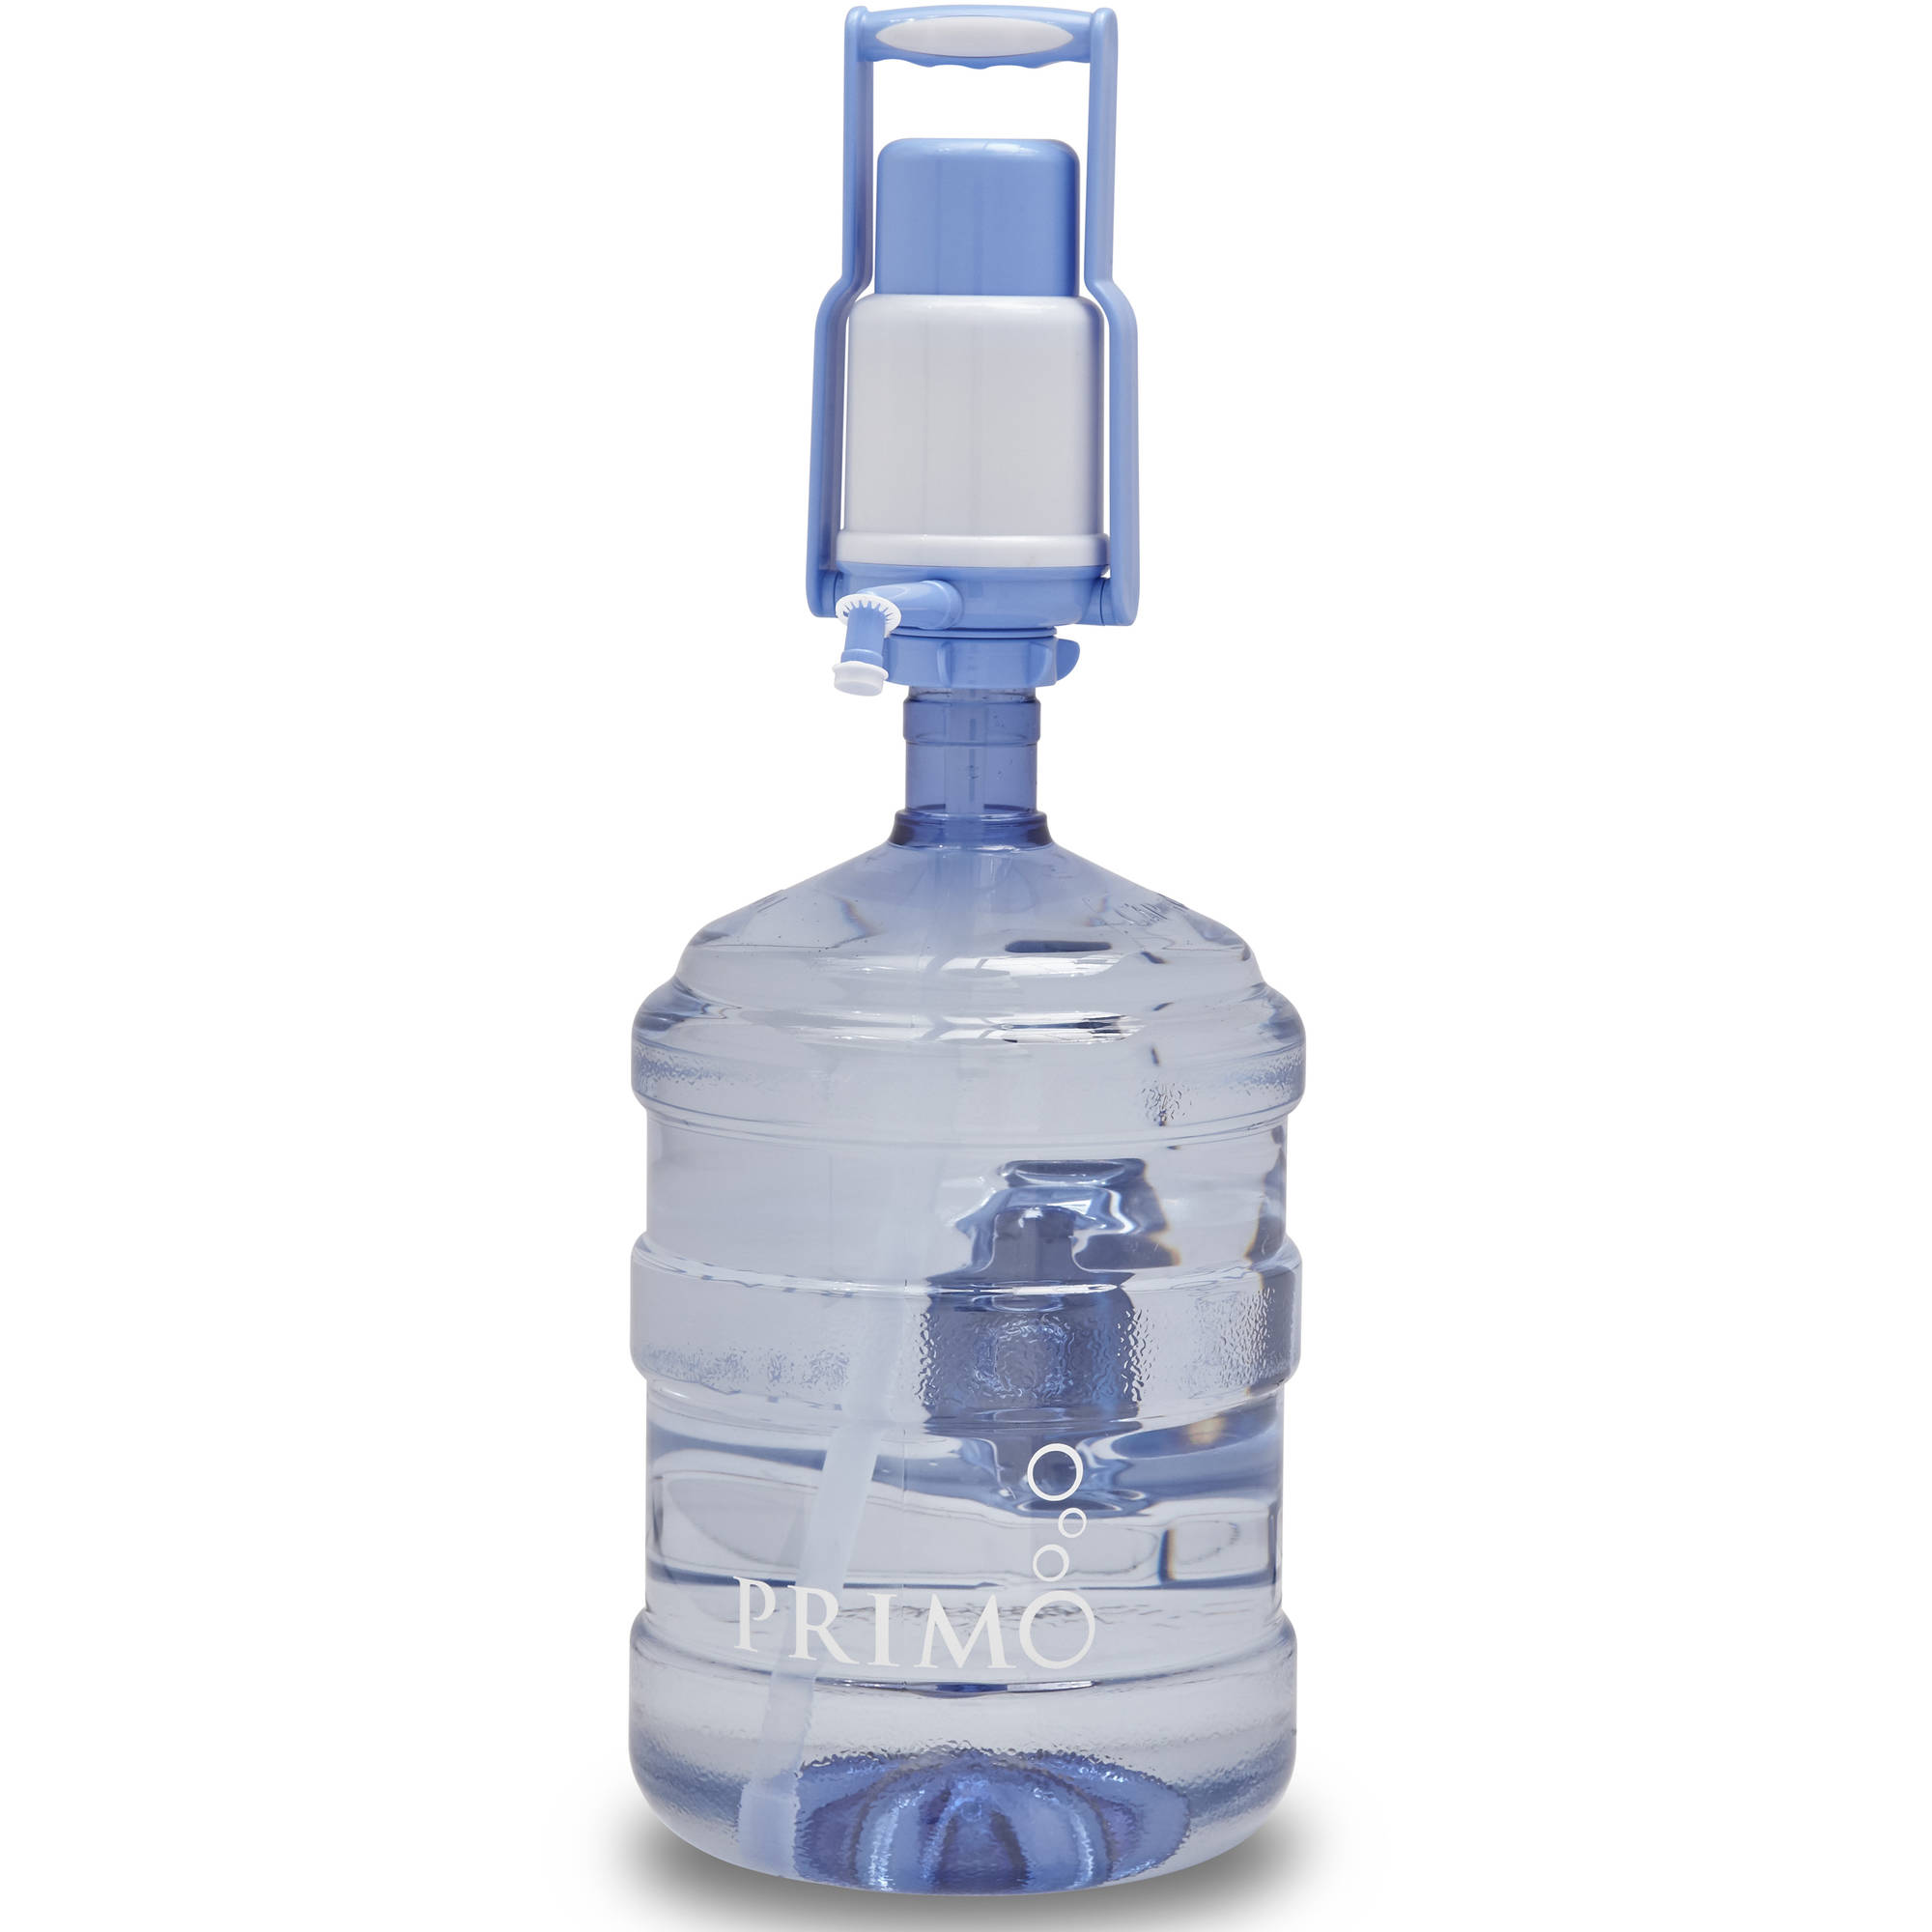 Pump Water Primo Portable Manual Water Pump Dispenser With Carry Handle